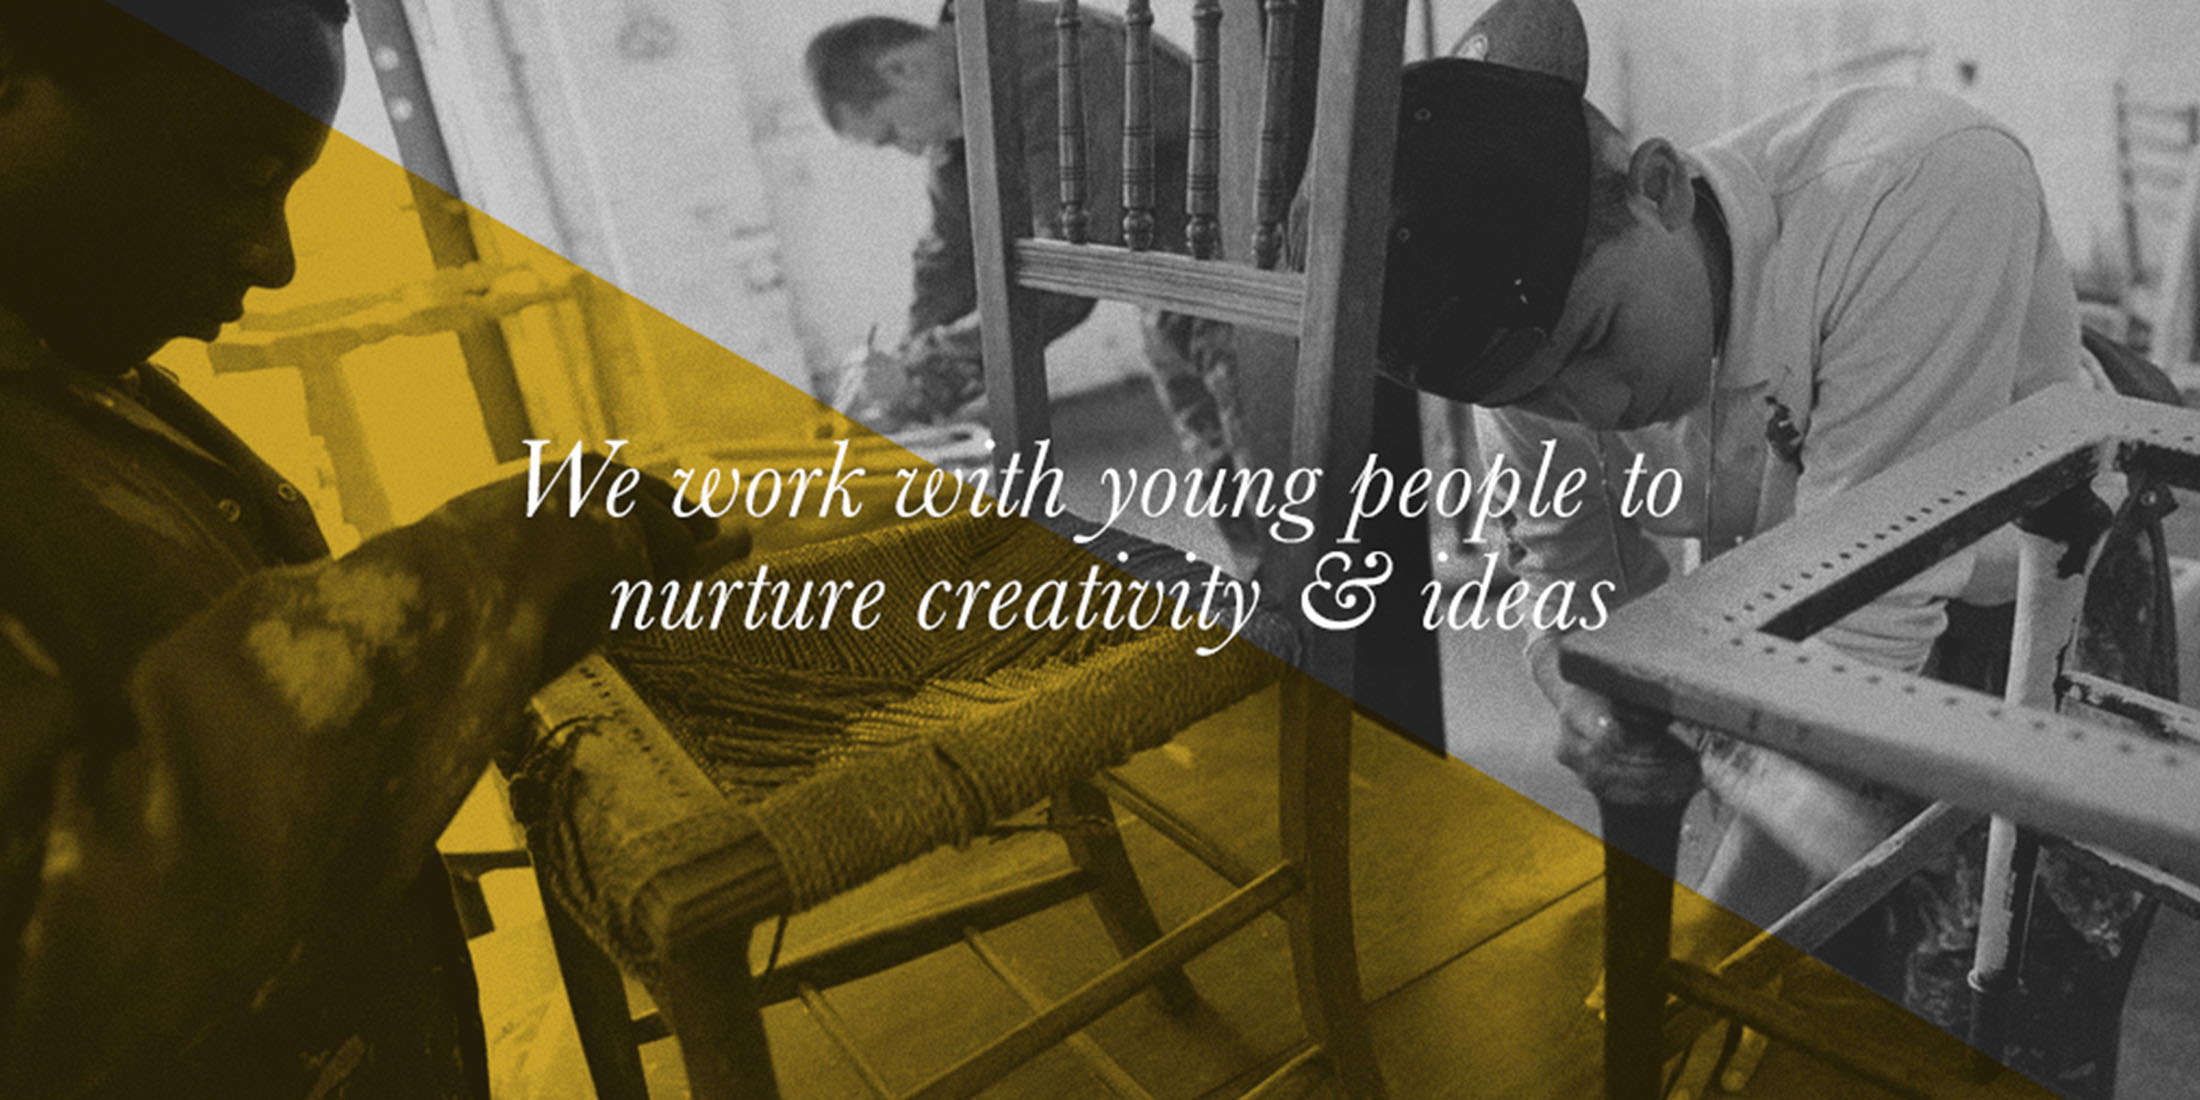 We work with young people to nurture creativity and ideas